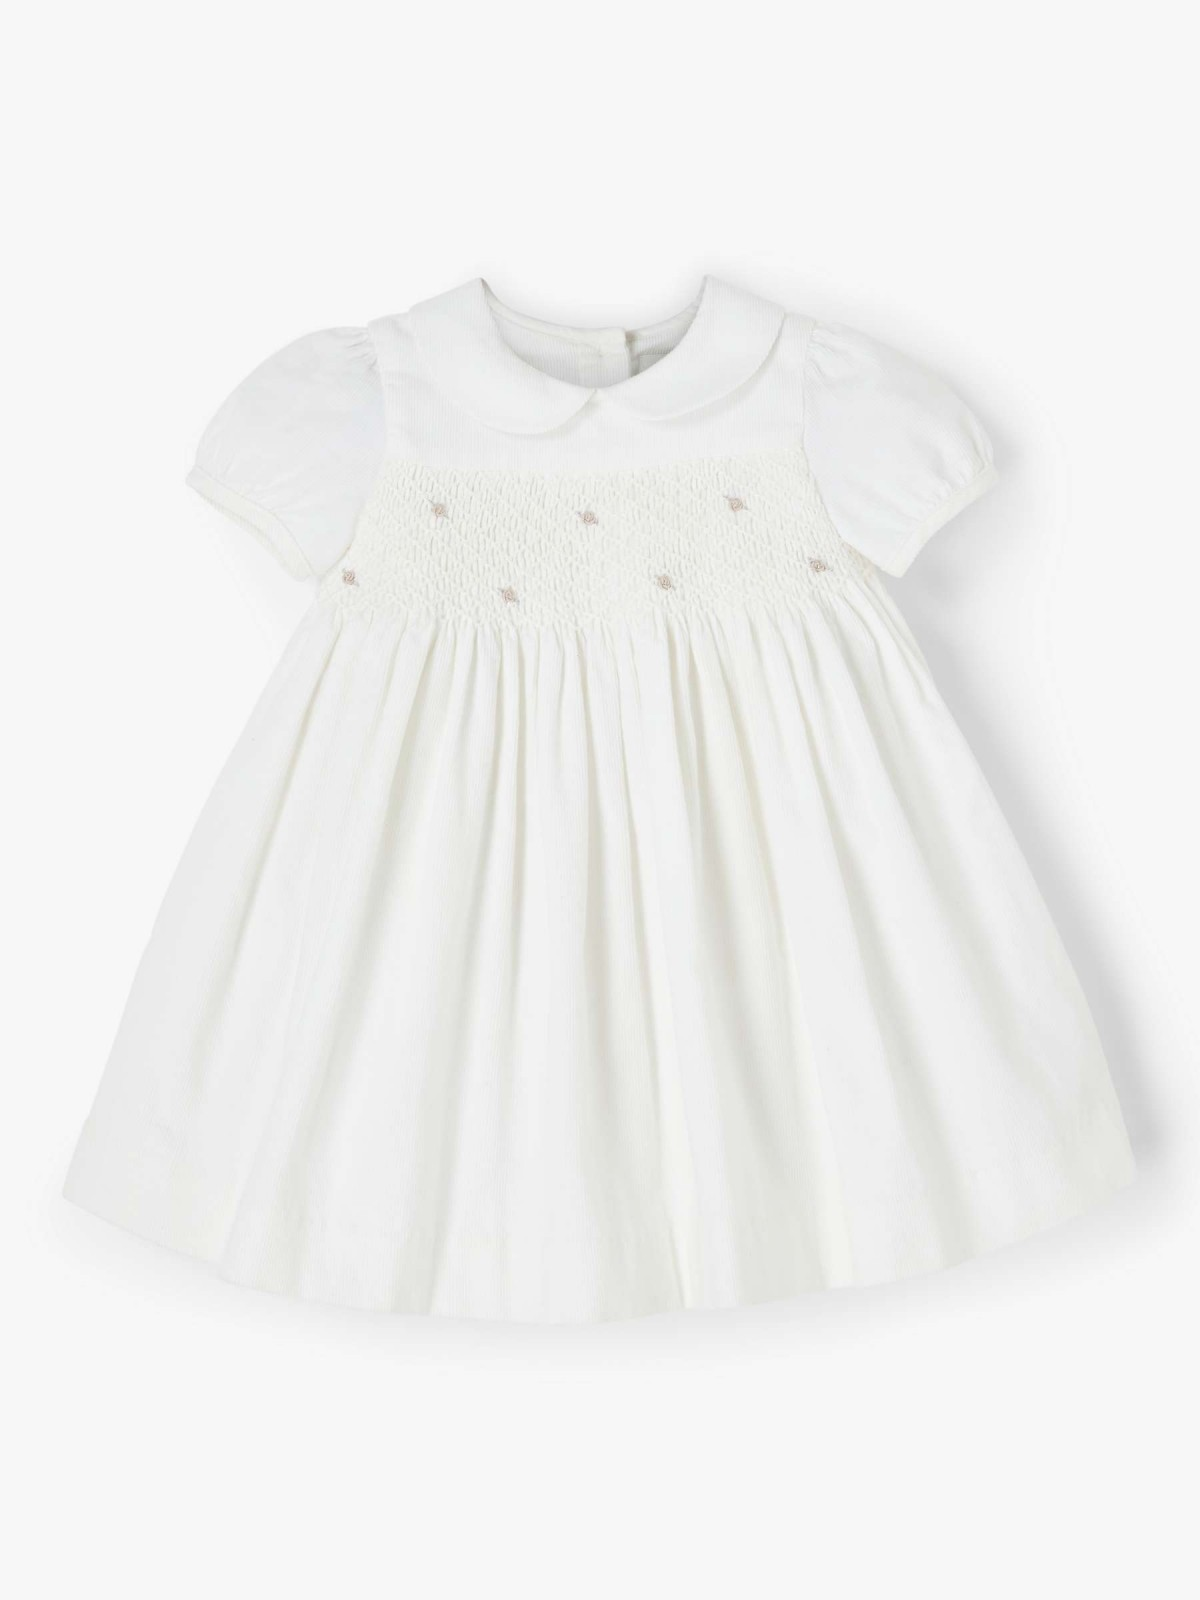 White Baby Girl Dress